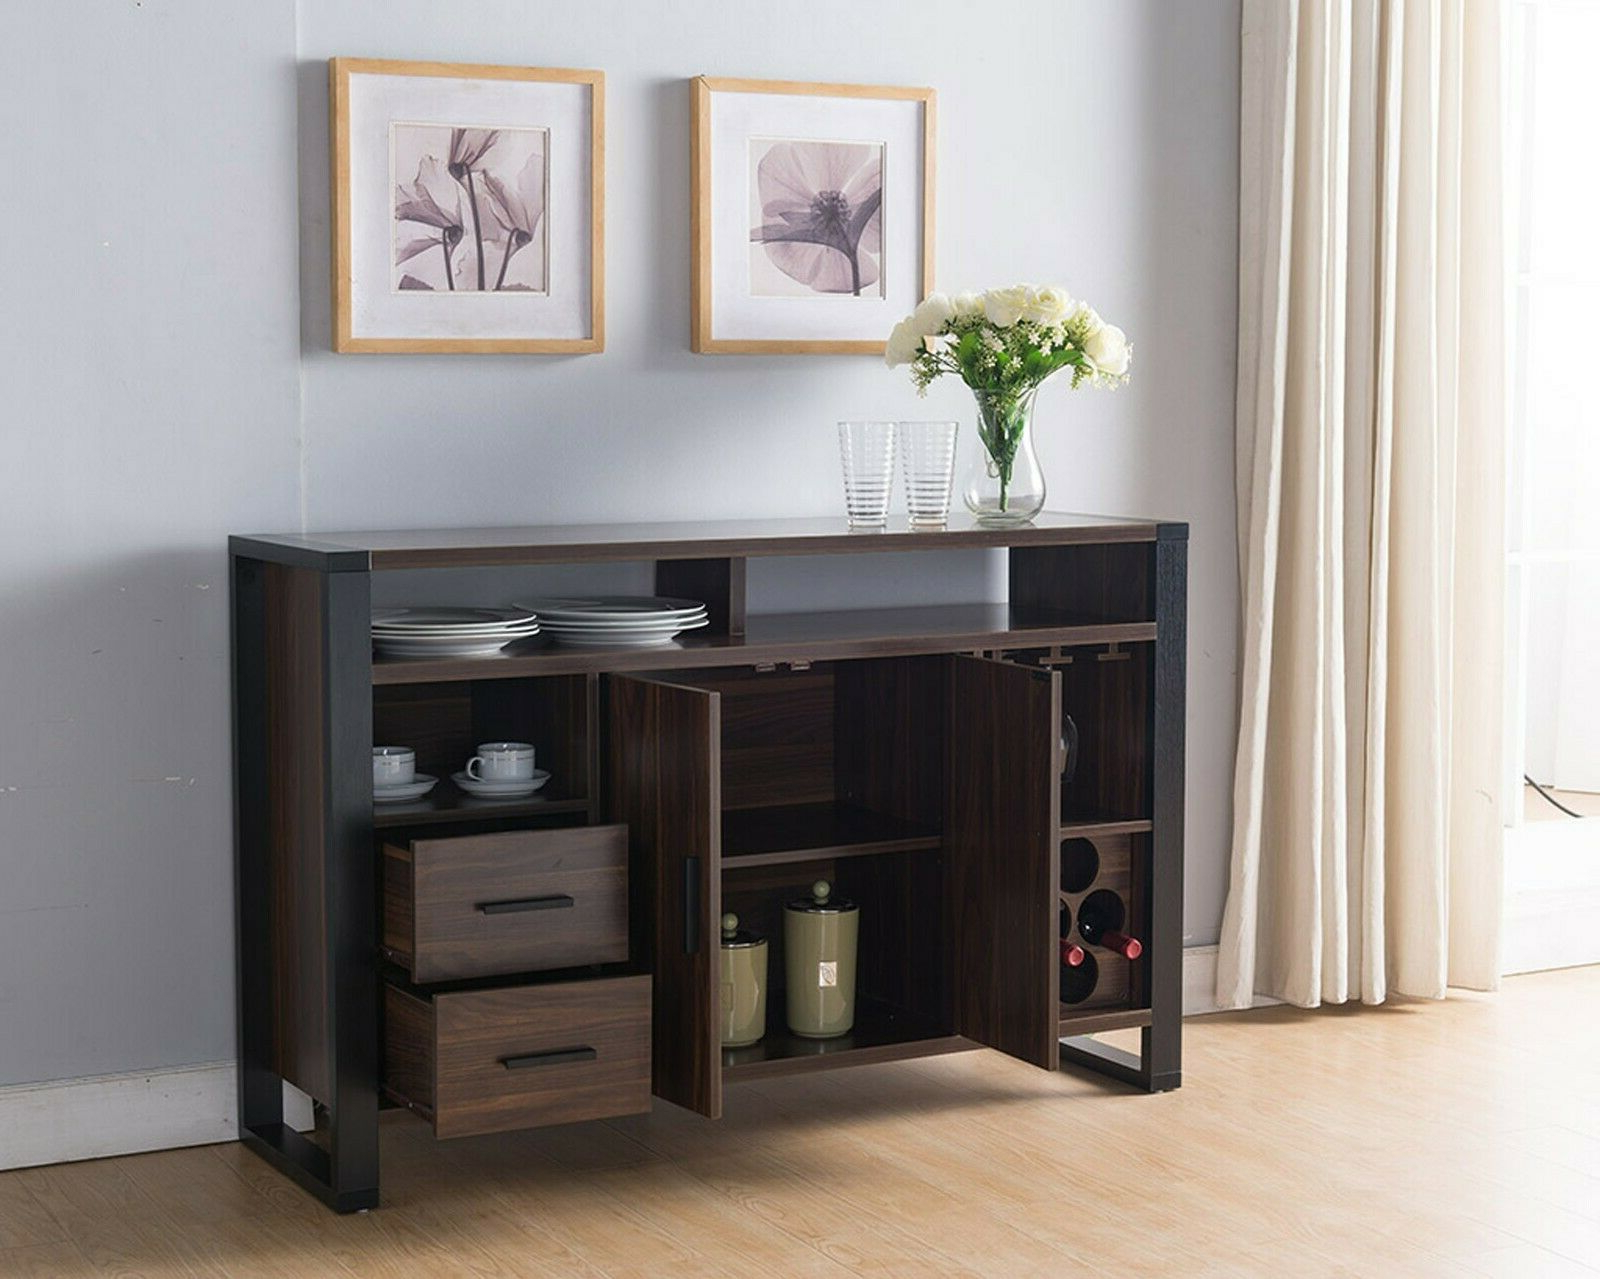 161640 Smart Home Dark Walnut & Black Wine Bar Sideboard Buffet Table Pertaining To Sideboards By Wildon Home (Gallery 4 of 20)